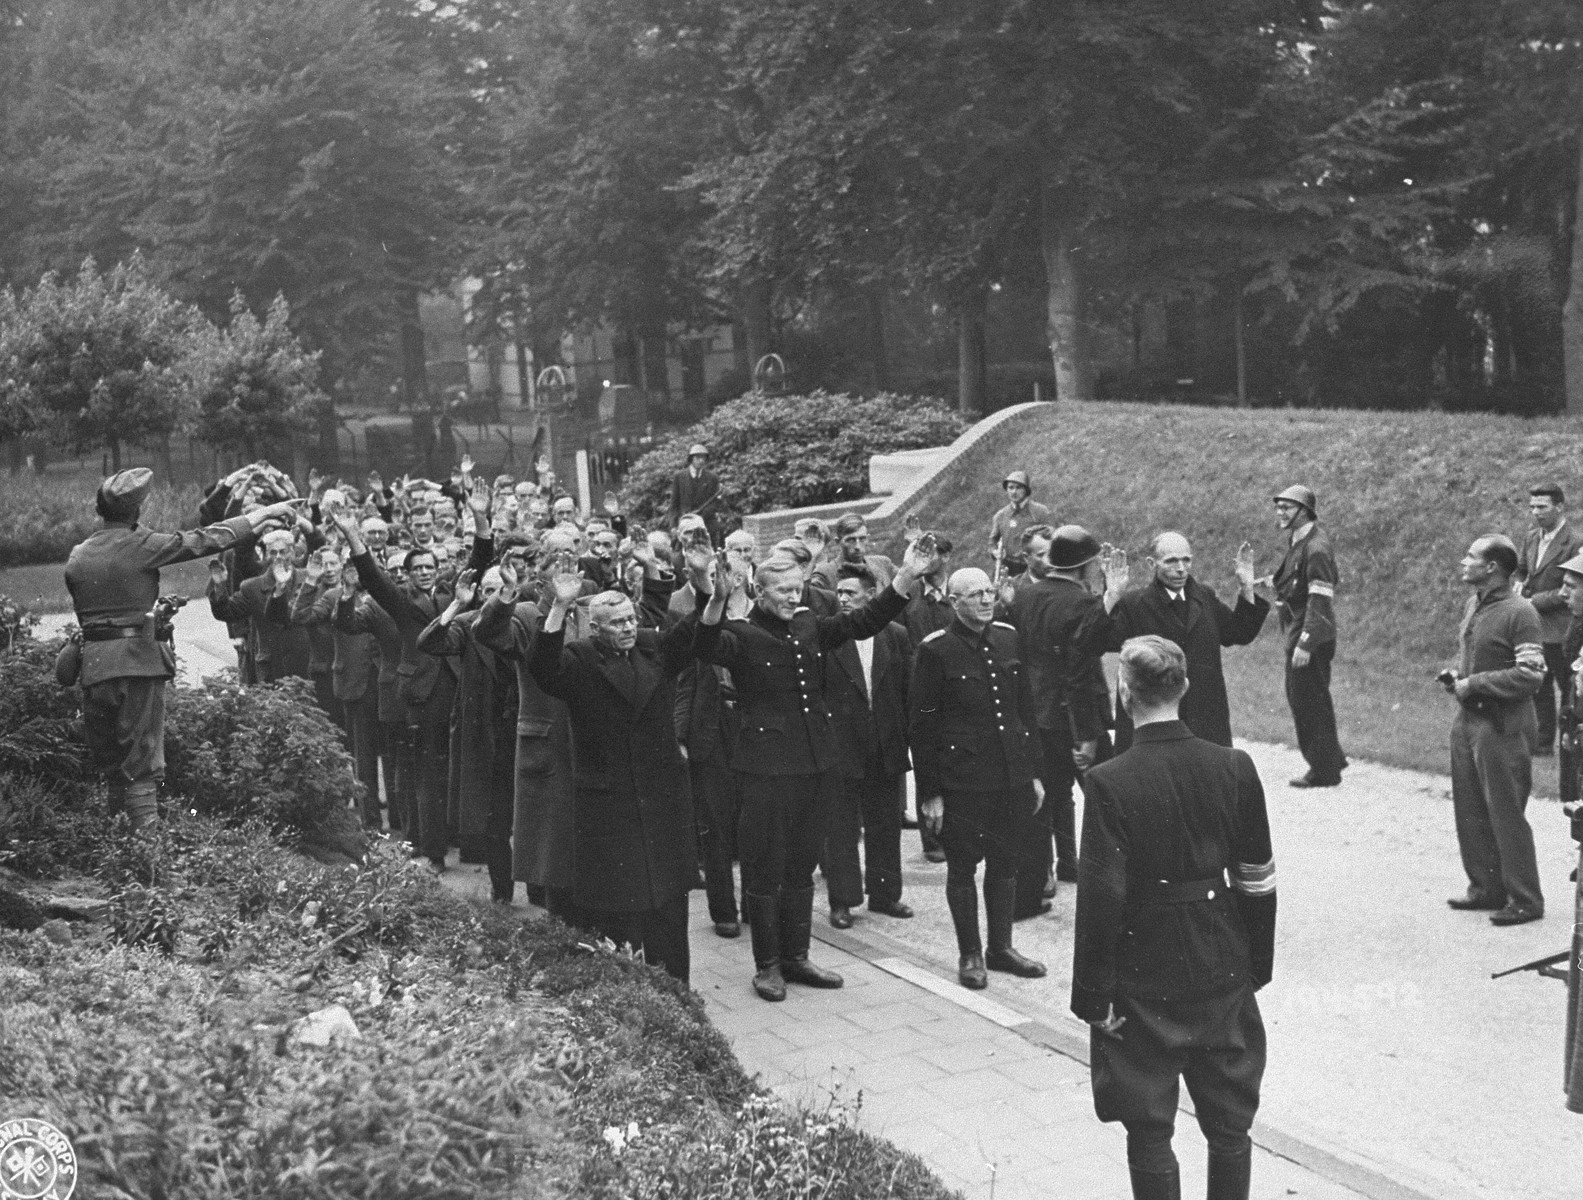 Dutch soldiers and members of the resistance arrest suspected civilian collaborators and former members of the Dutch Nazi Party.